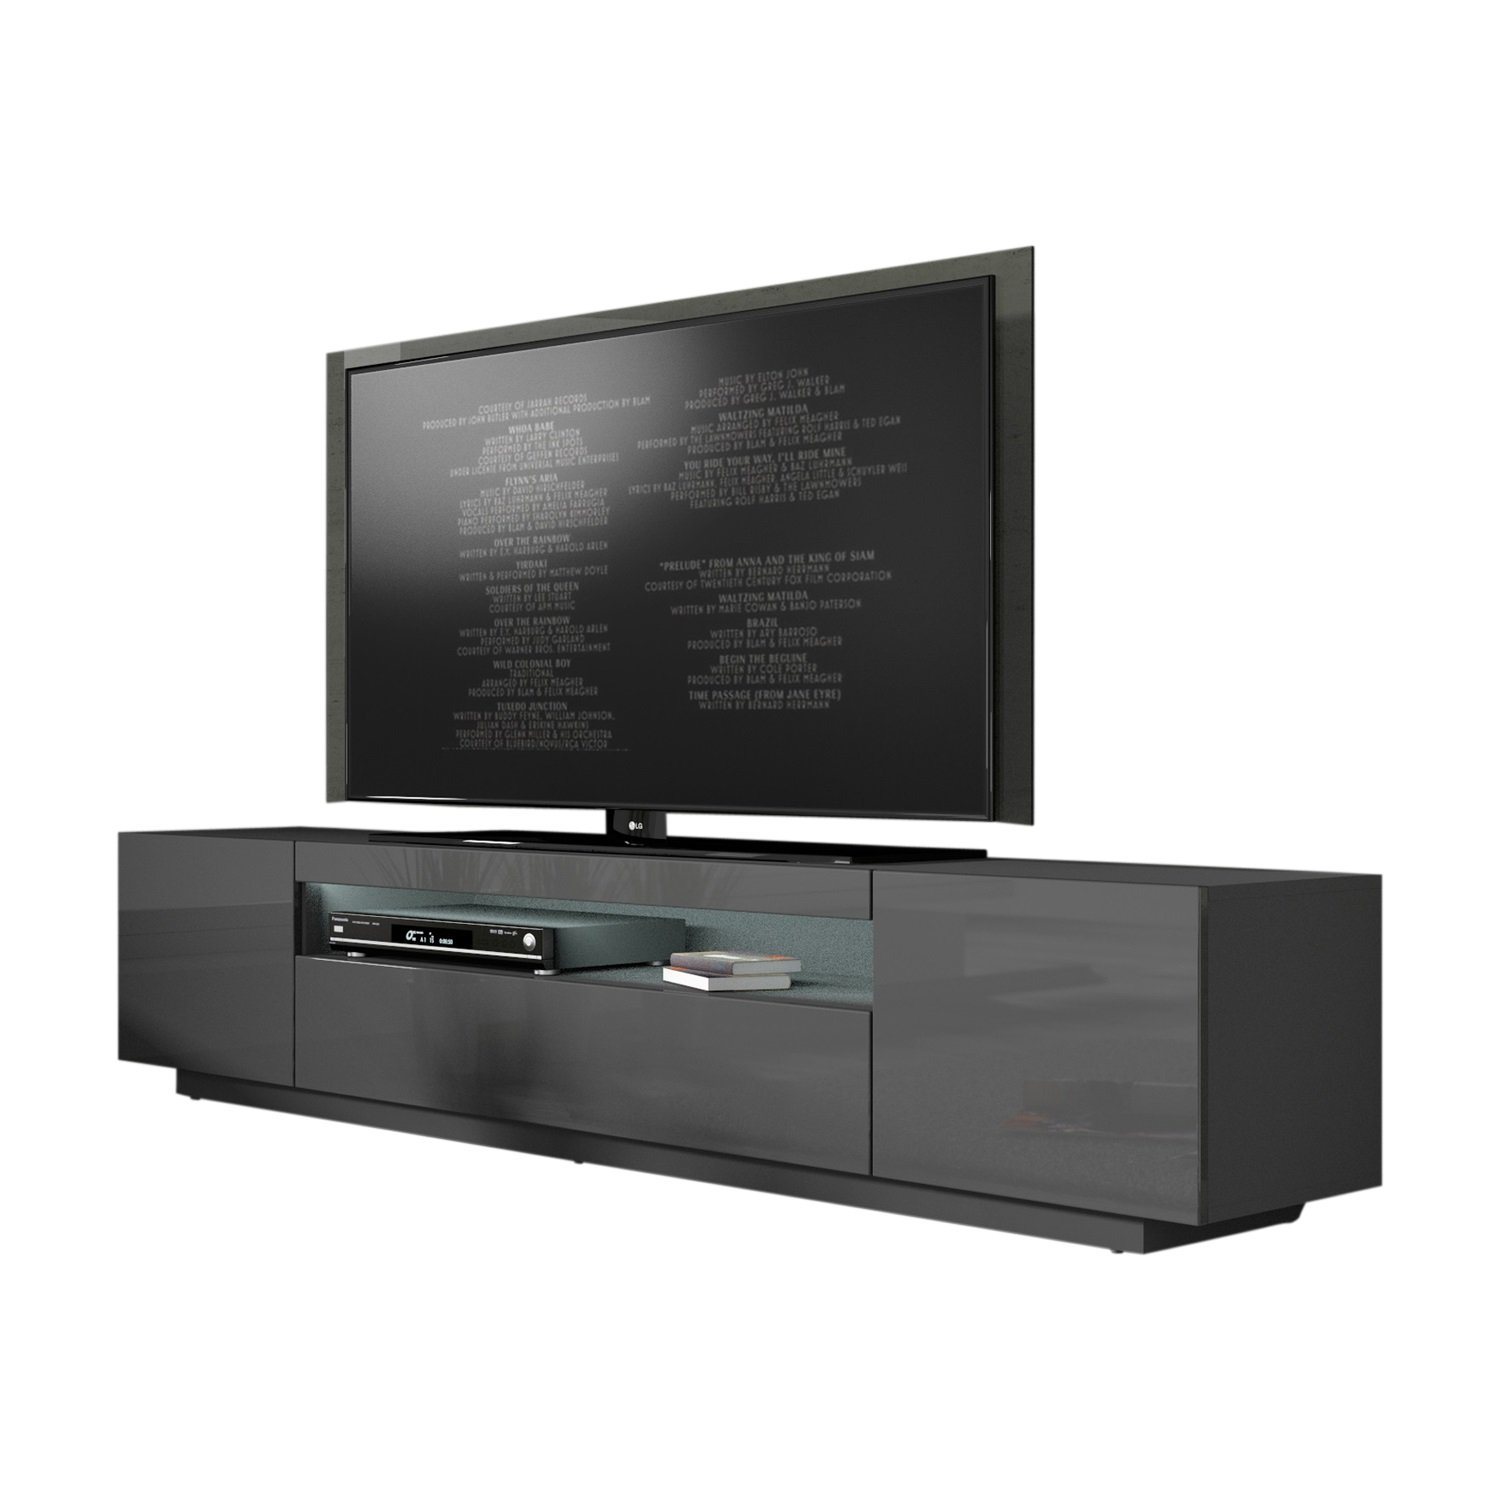 MEBLE FURNITURE & RUGS Miami 200 Modern 90'' TV Stand High Gloss Front, 16 Colors LED (Dark Grey) by MEBLE FURNITURE & RUGS